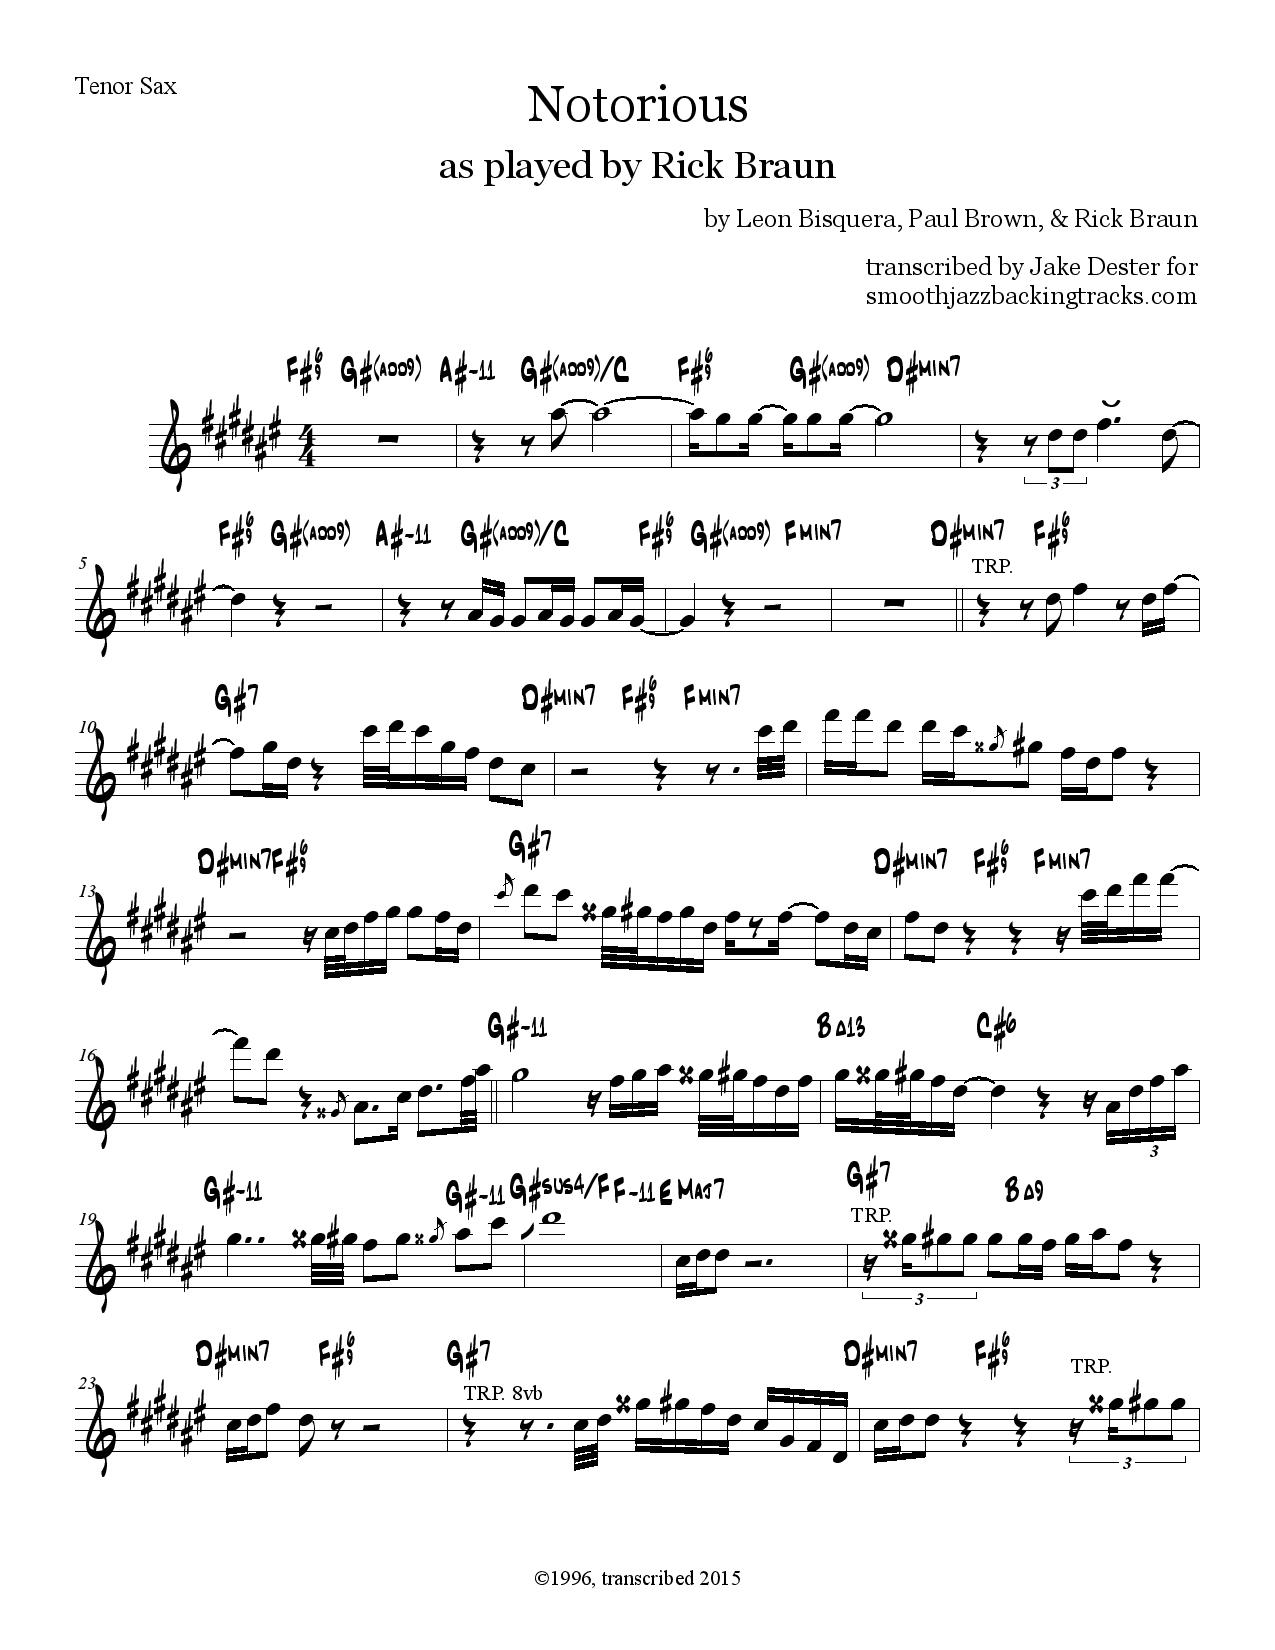 Sax Solo Sheet Music In Printable PDF